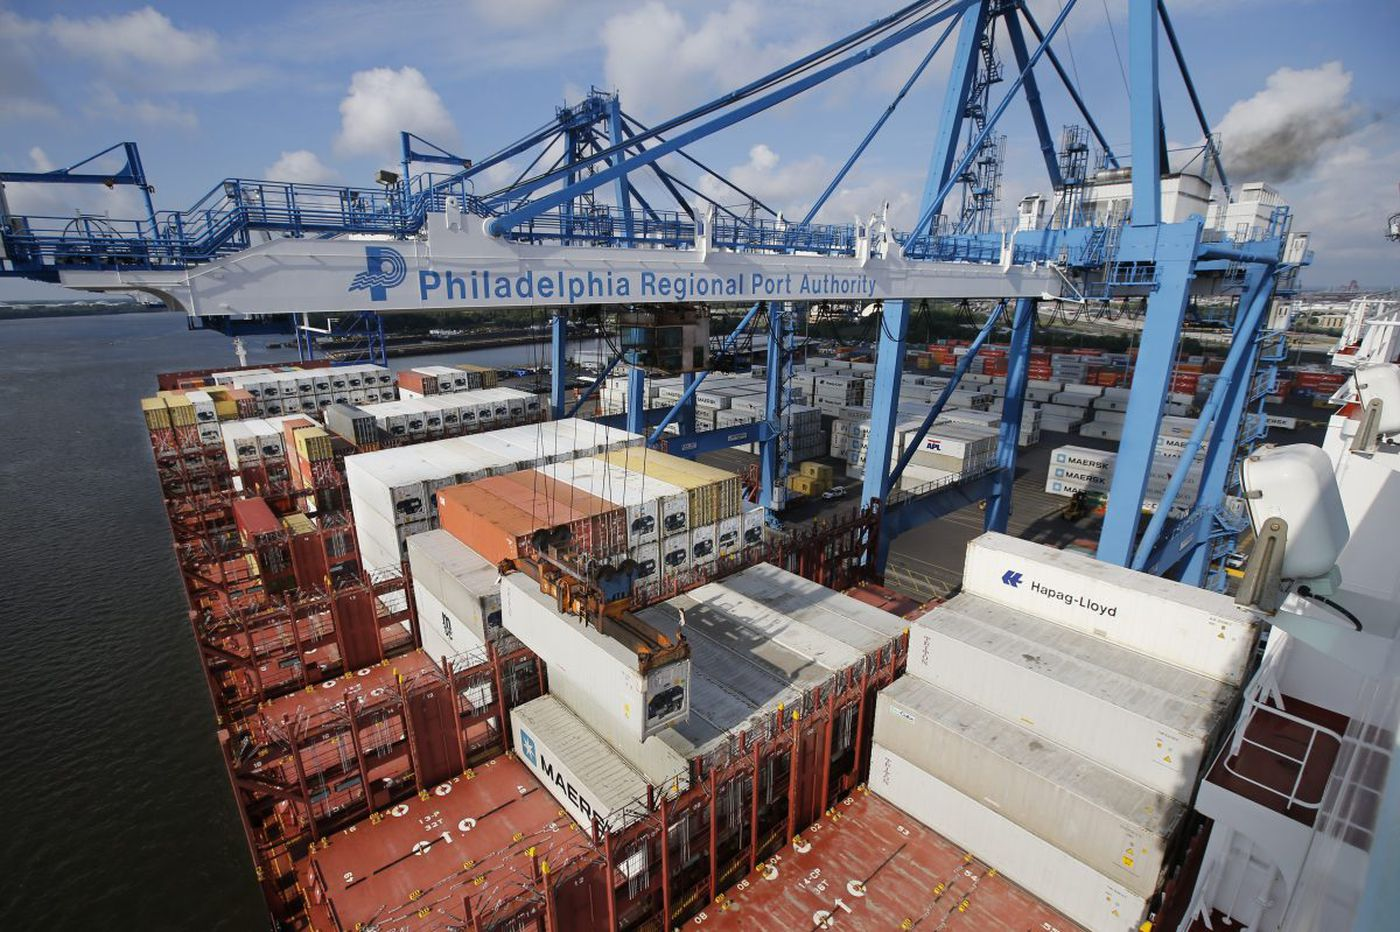 Shipping container falls on truck at port, killing worker